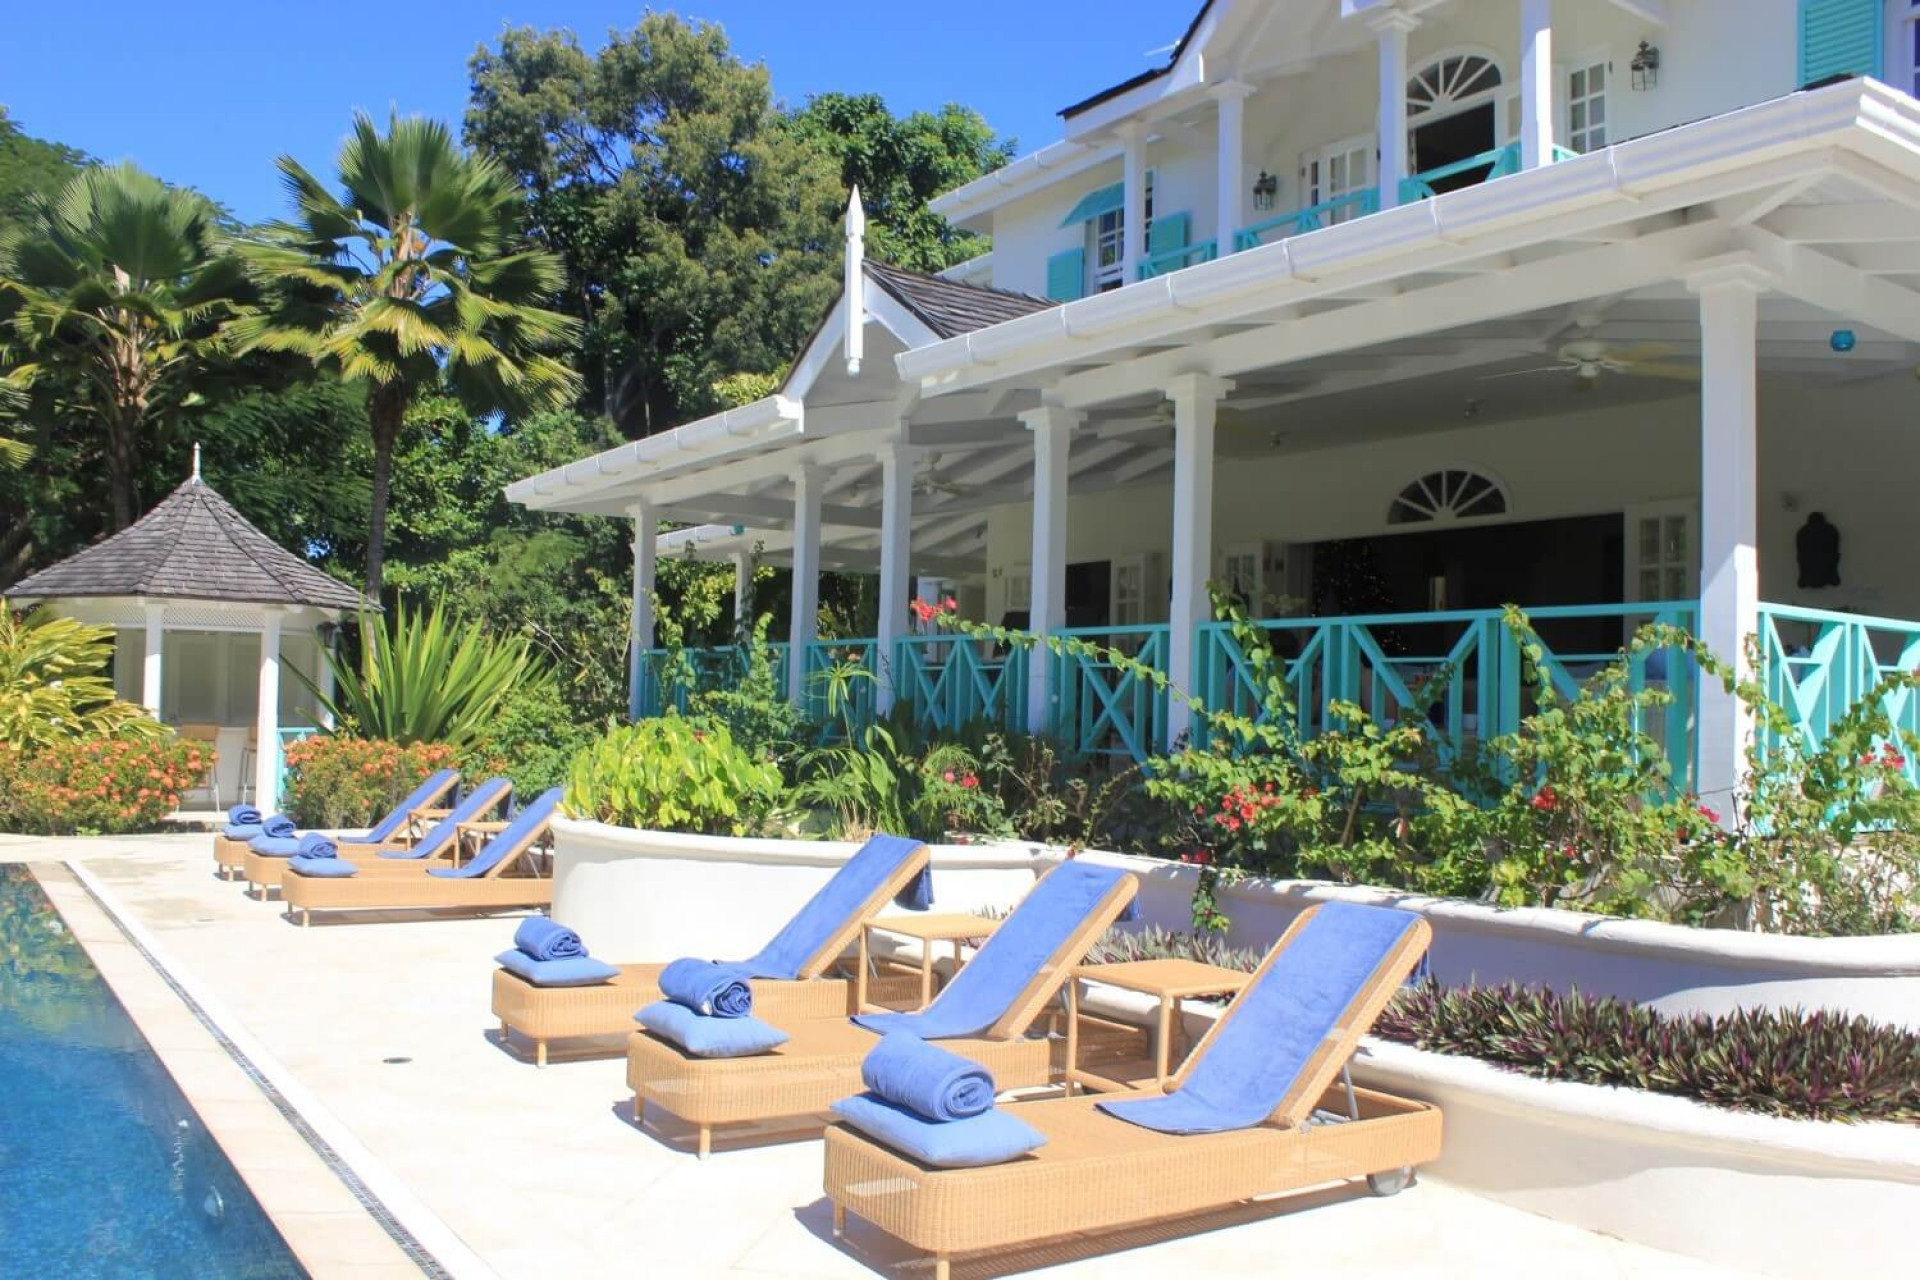 Sunloungers in front of 6 Bedroom Villa in Sandy Lane with Private Pool & Tropical Garden